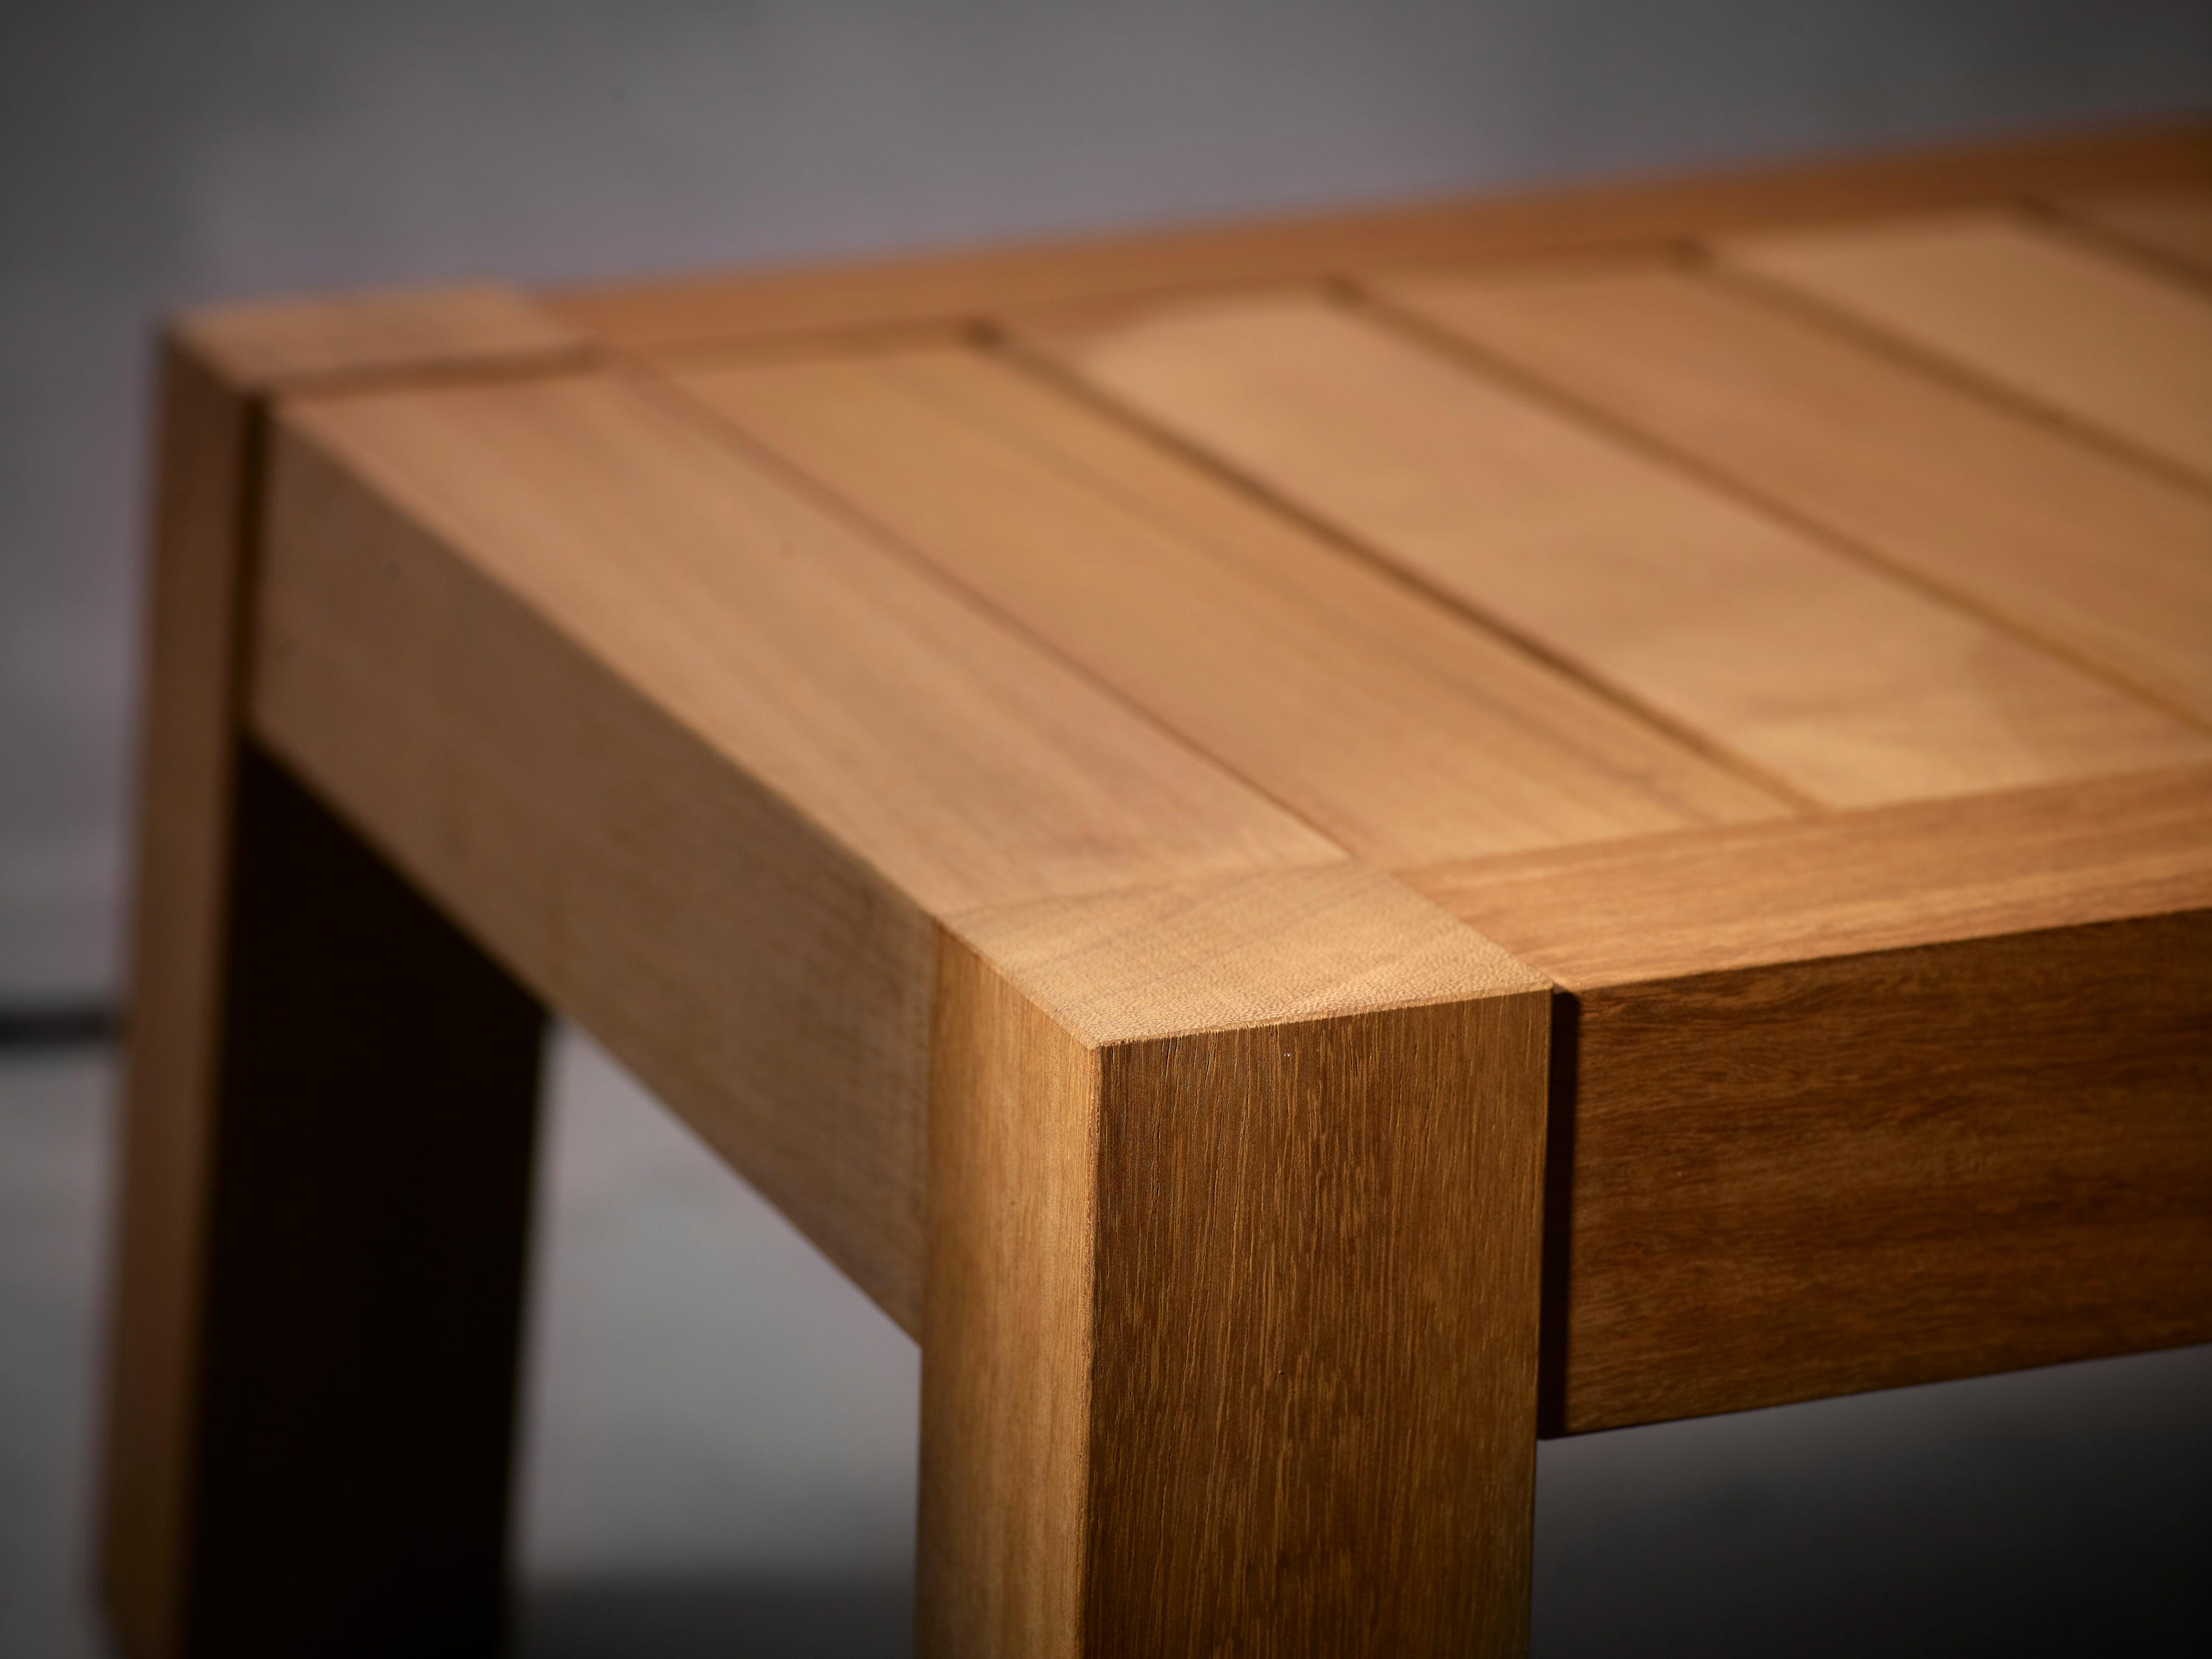 ANNET COFFEETABLE - Coffee tables from Piet Boon | Architonic